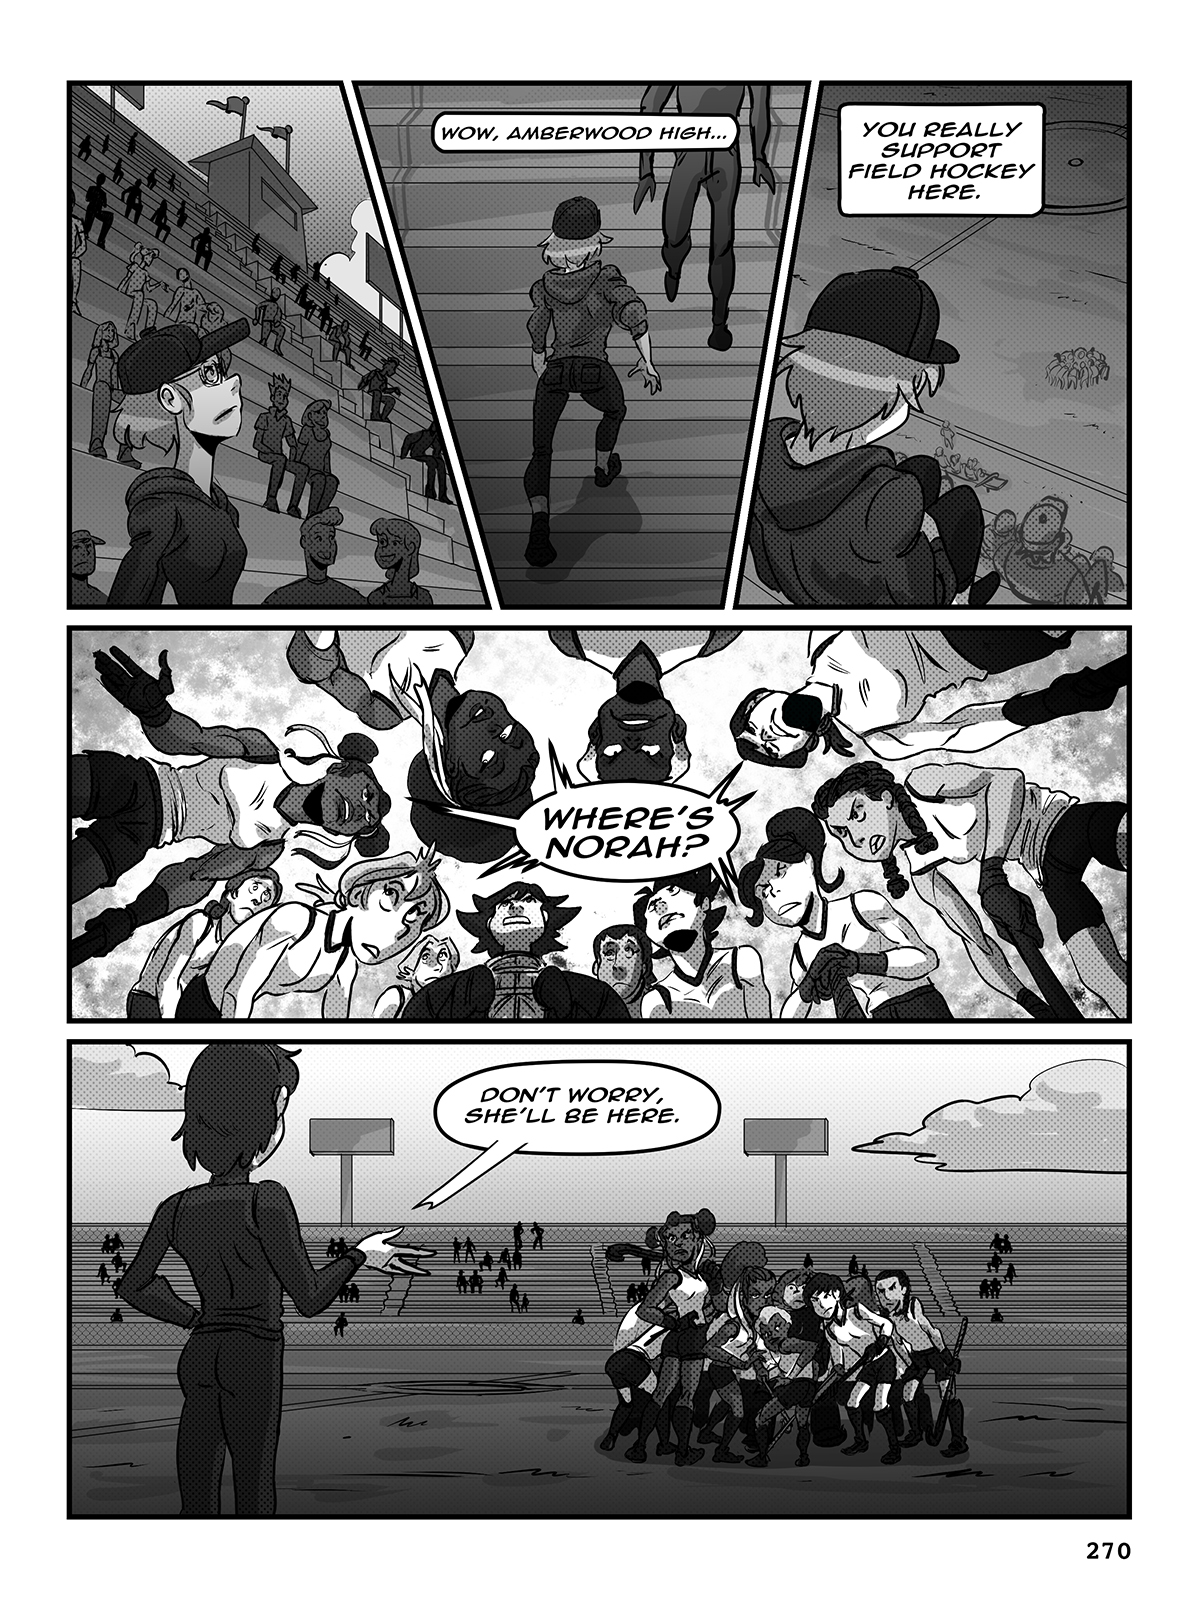 Hockey, Love, & GUTS! – Chapter 9 – Page 270